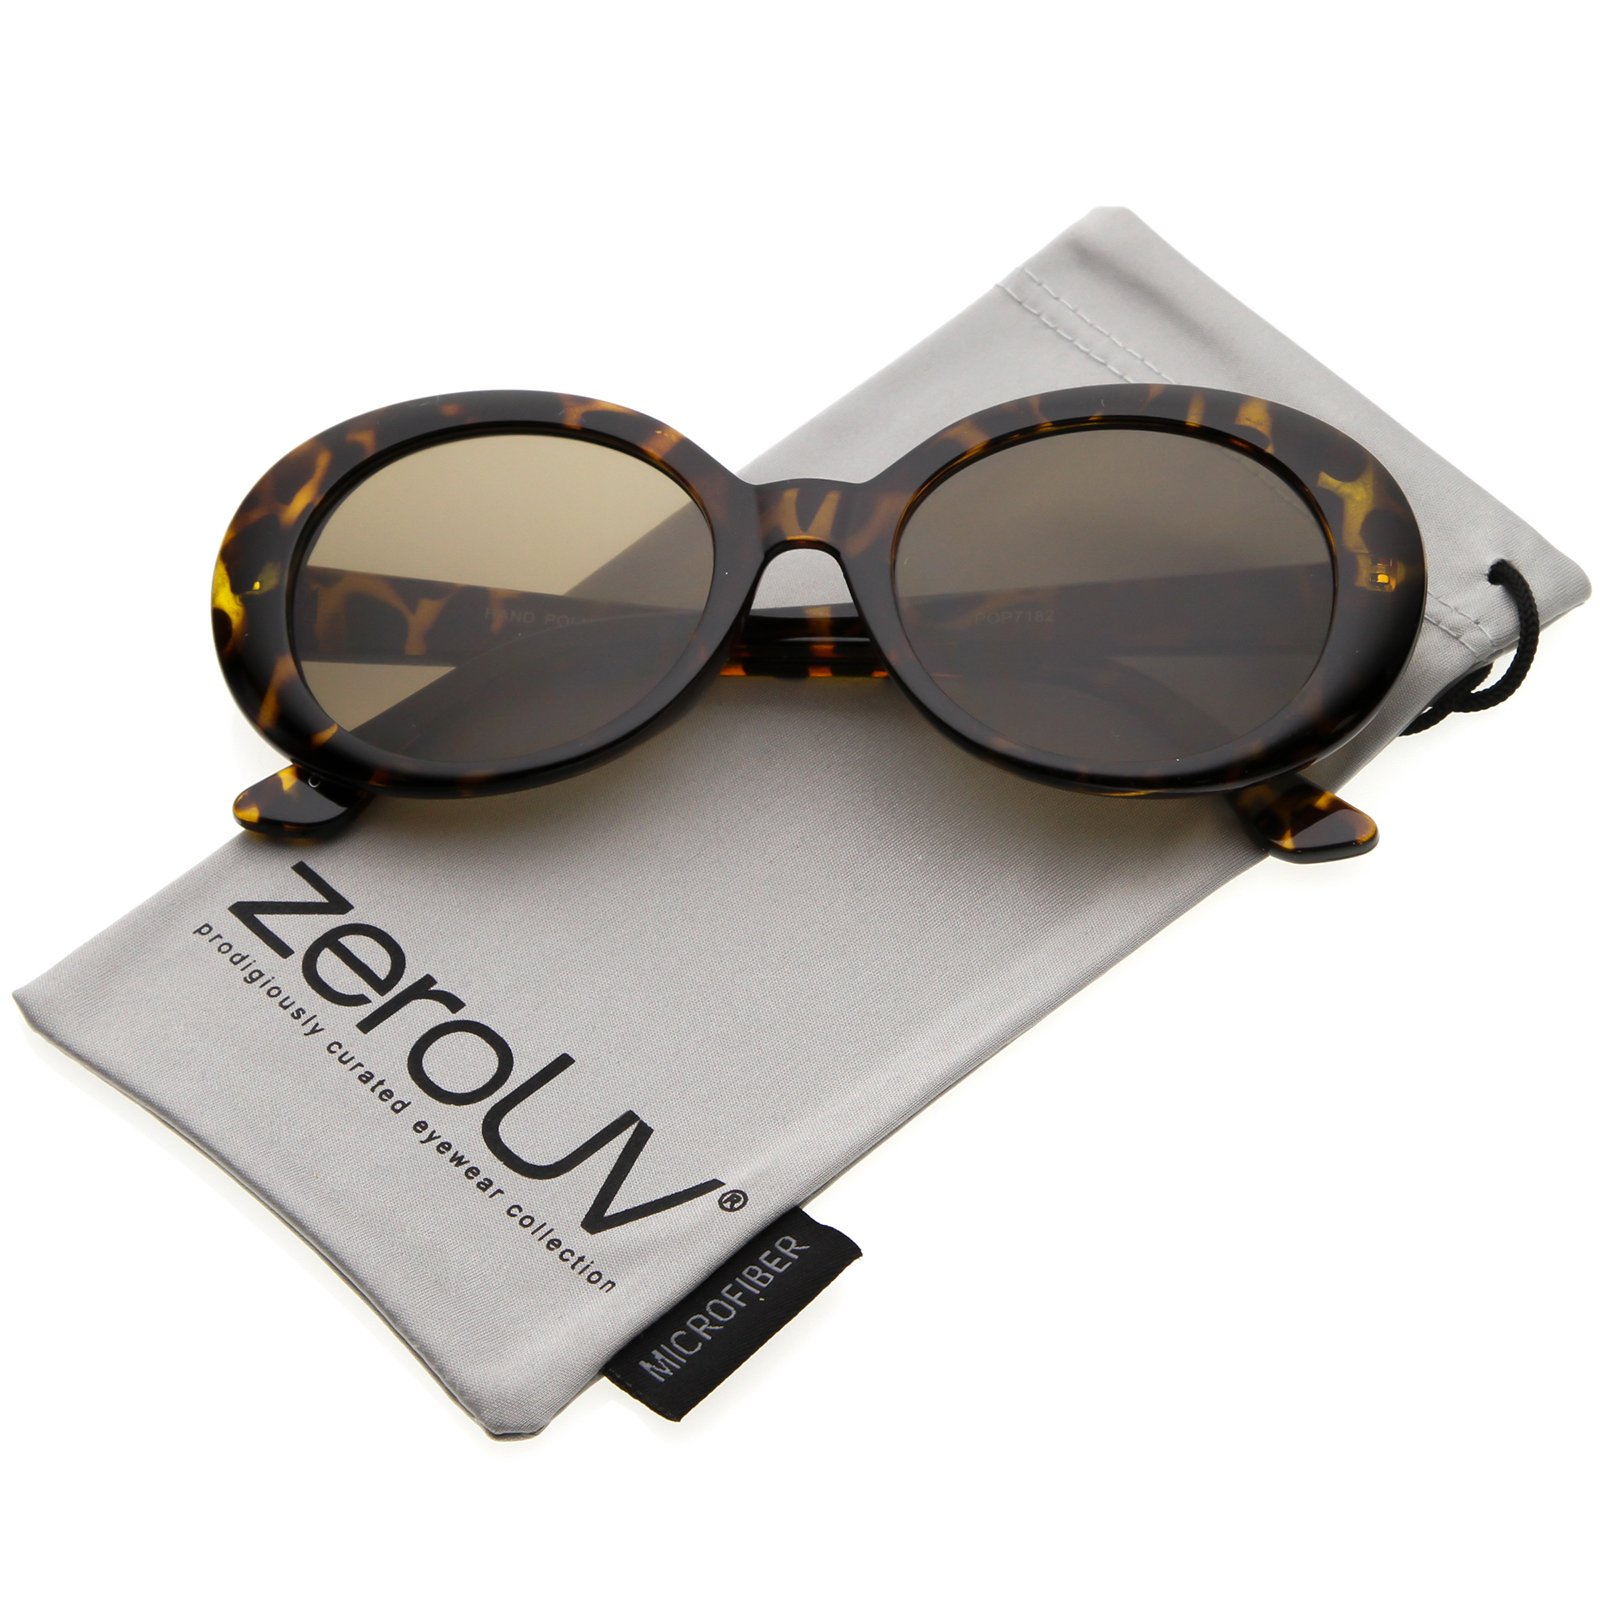 cfa23b19835 zeroUV - Large Clout Goggles Thick Oval Frame Sunglasses with Round Lens  53mm (Tortoise Brown)